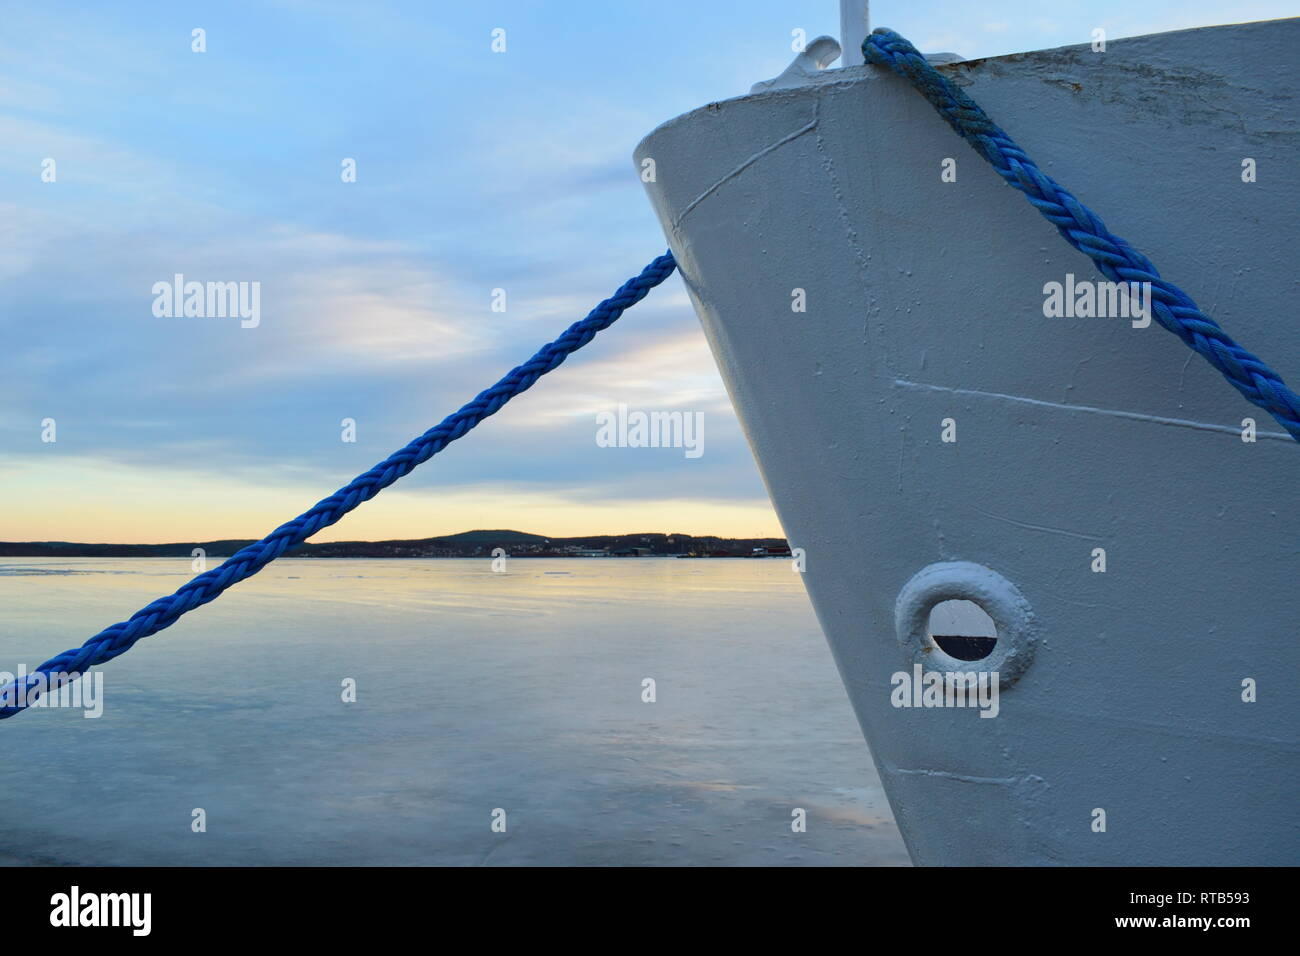 A ship lies moored in an ice covered harbor bay. Stock Photo